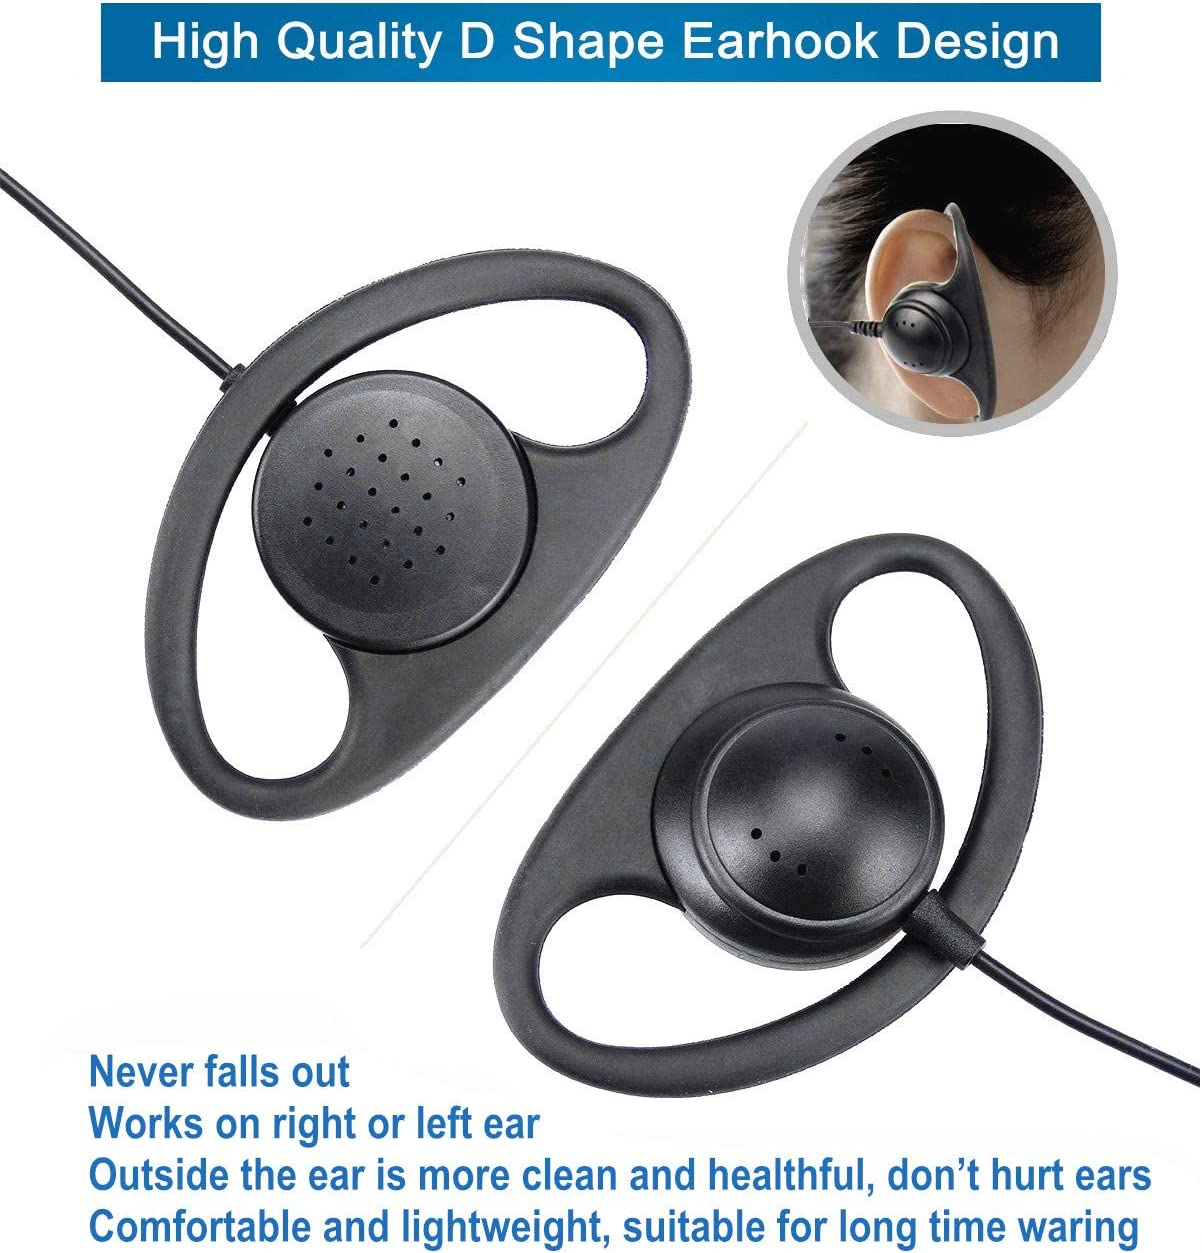 HYS Earpiece with Mic 2 Pin Walike Talkie Earpiece Adjustable Volume Headset G Shape Earpiece Compatible Retevis H-777 RT22 RT21 H-777S Kenwood Baofeng UV-5R BF-F8HP BF-888S